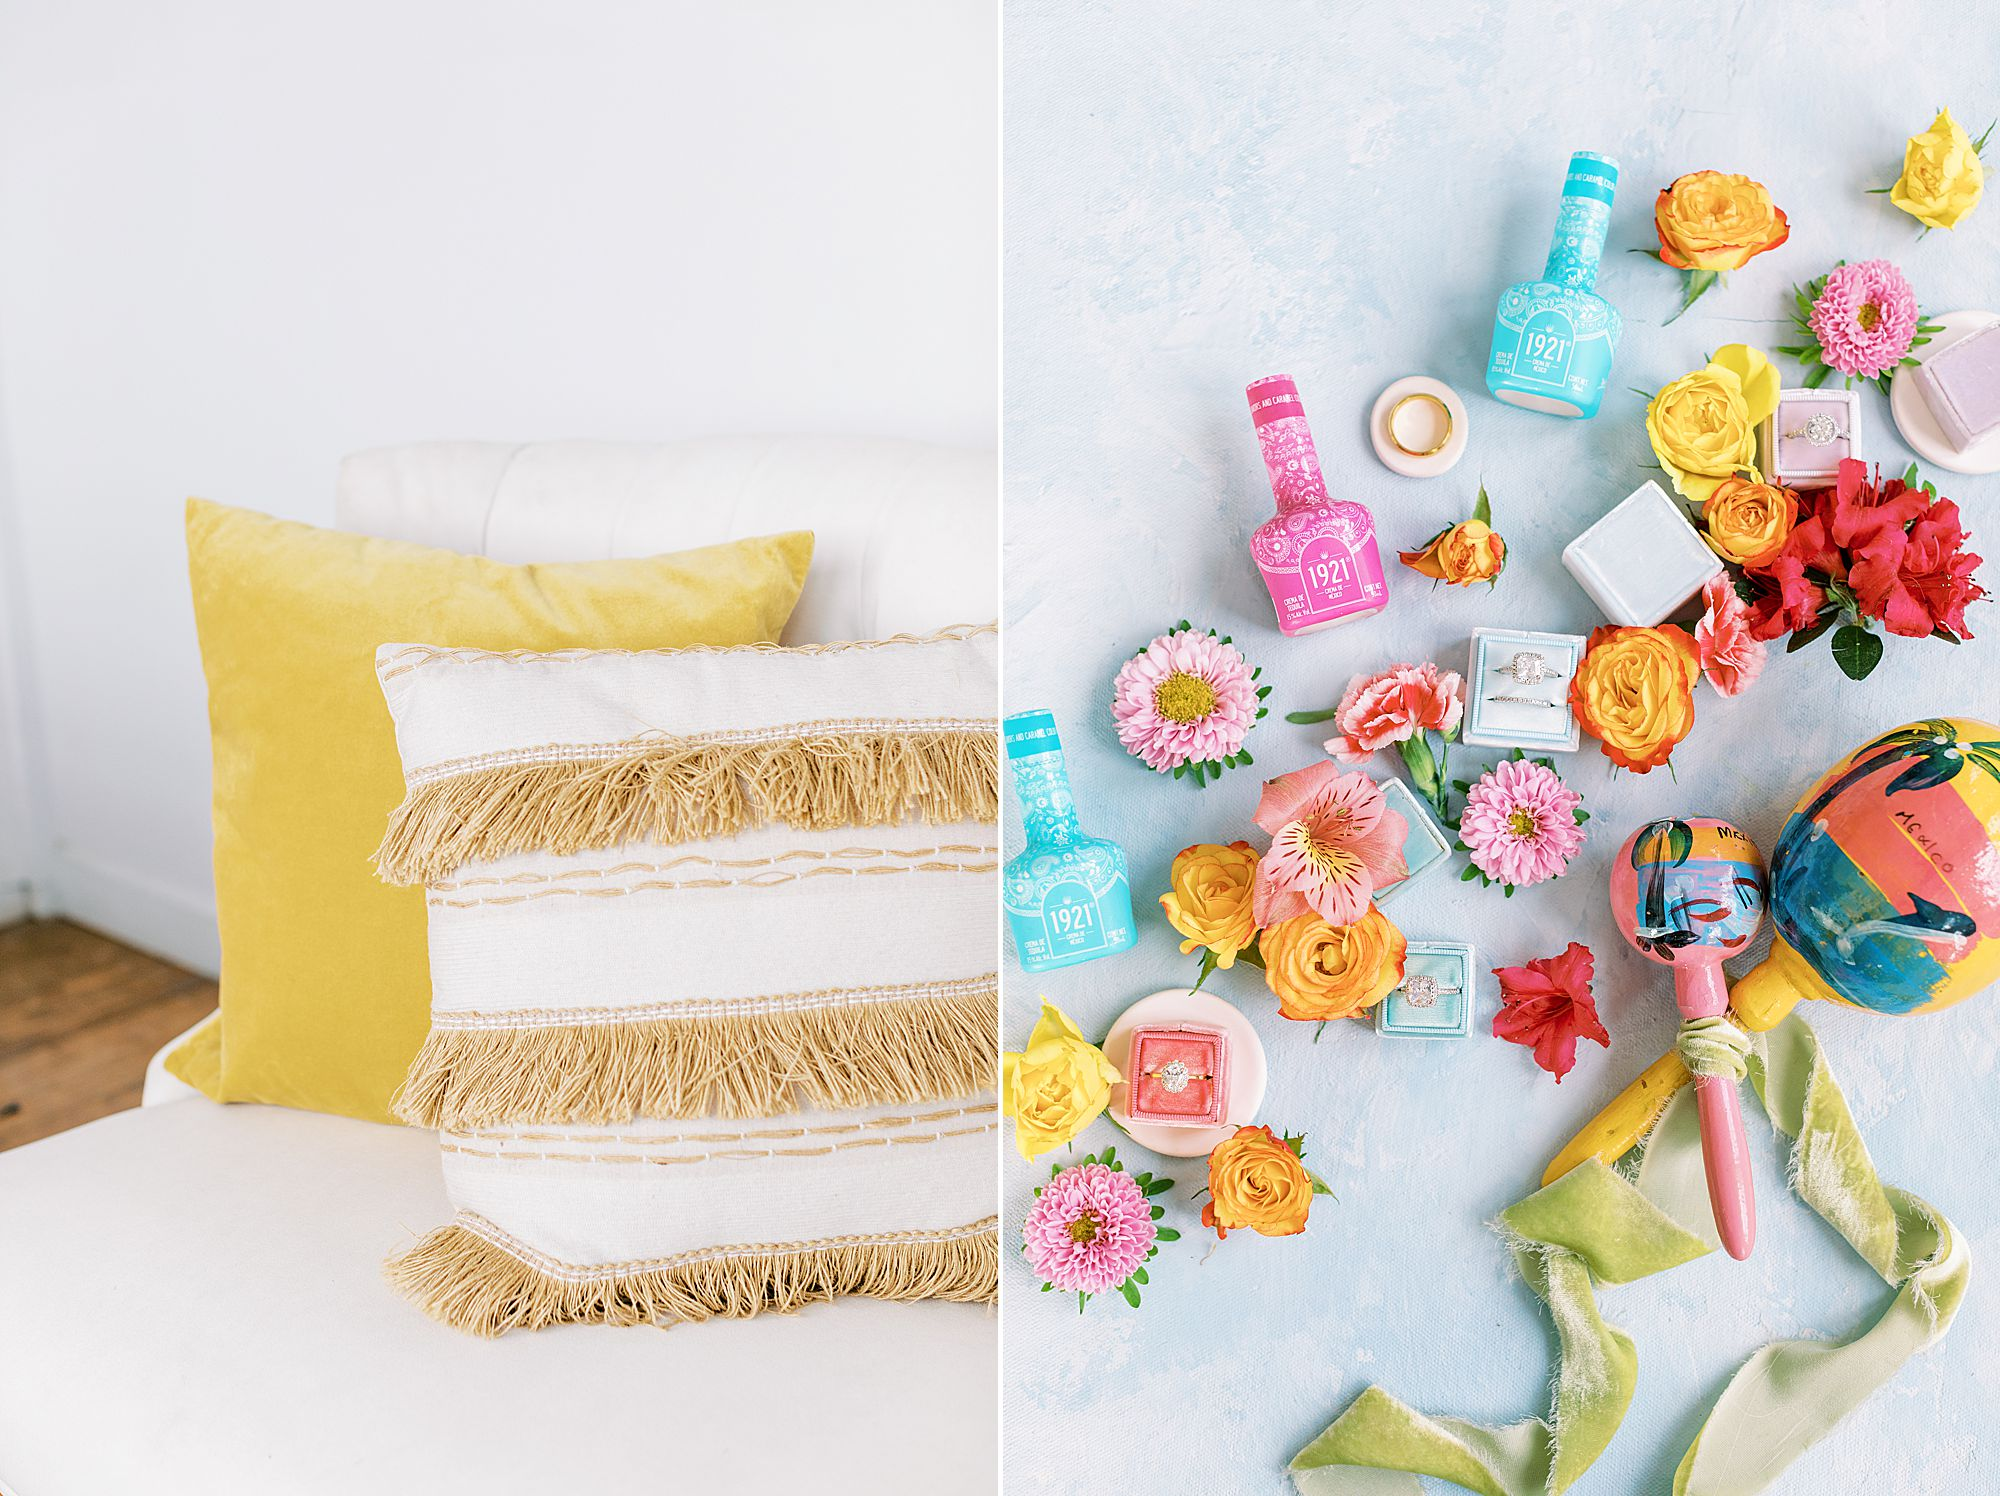 Cinco De Mayo Inspiration for Your FIesta - Party Crush Studio and Ashley Baumgartner_0026.jpg